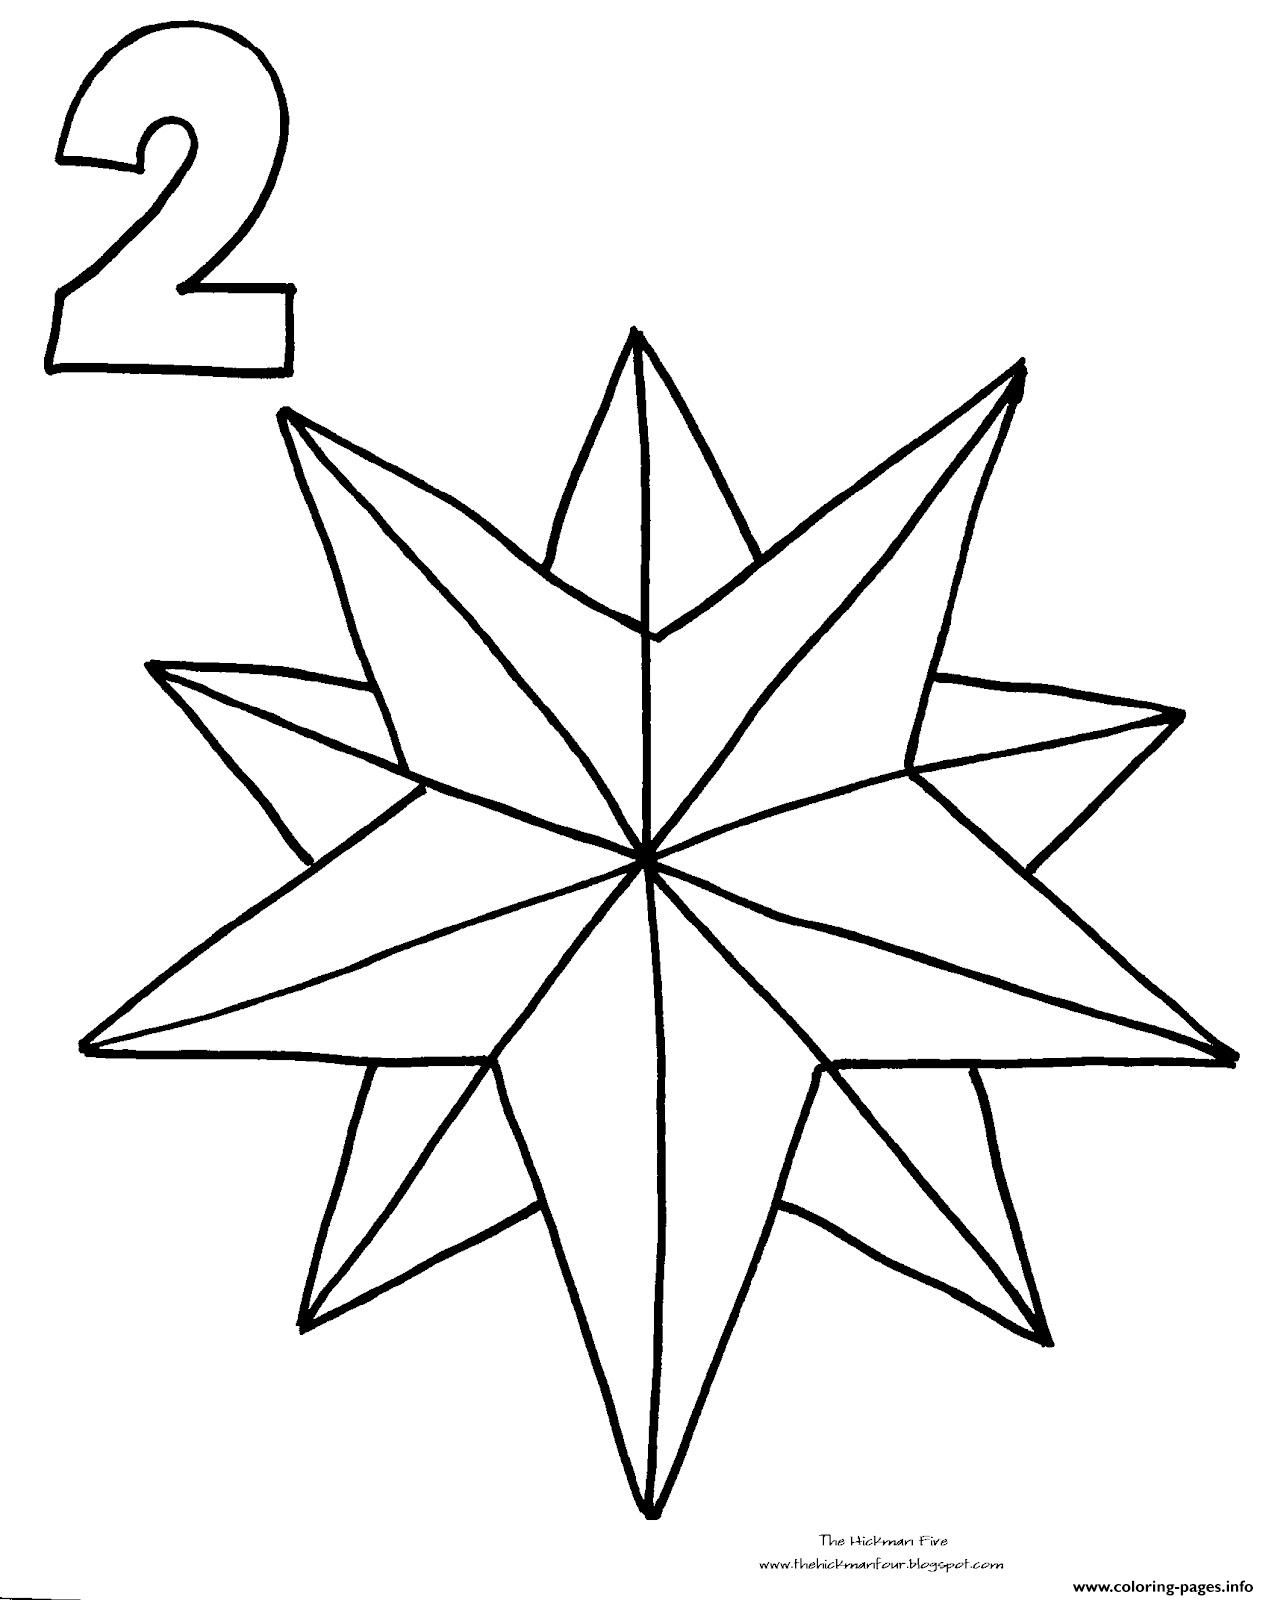 stars to colour and print free printable star coloring pages for kids colour to print stars and